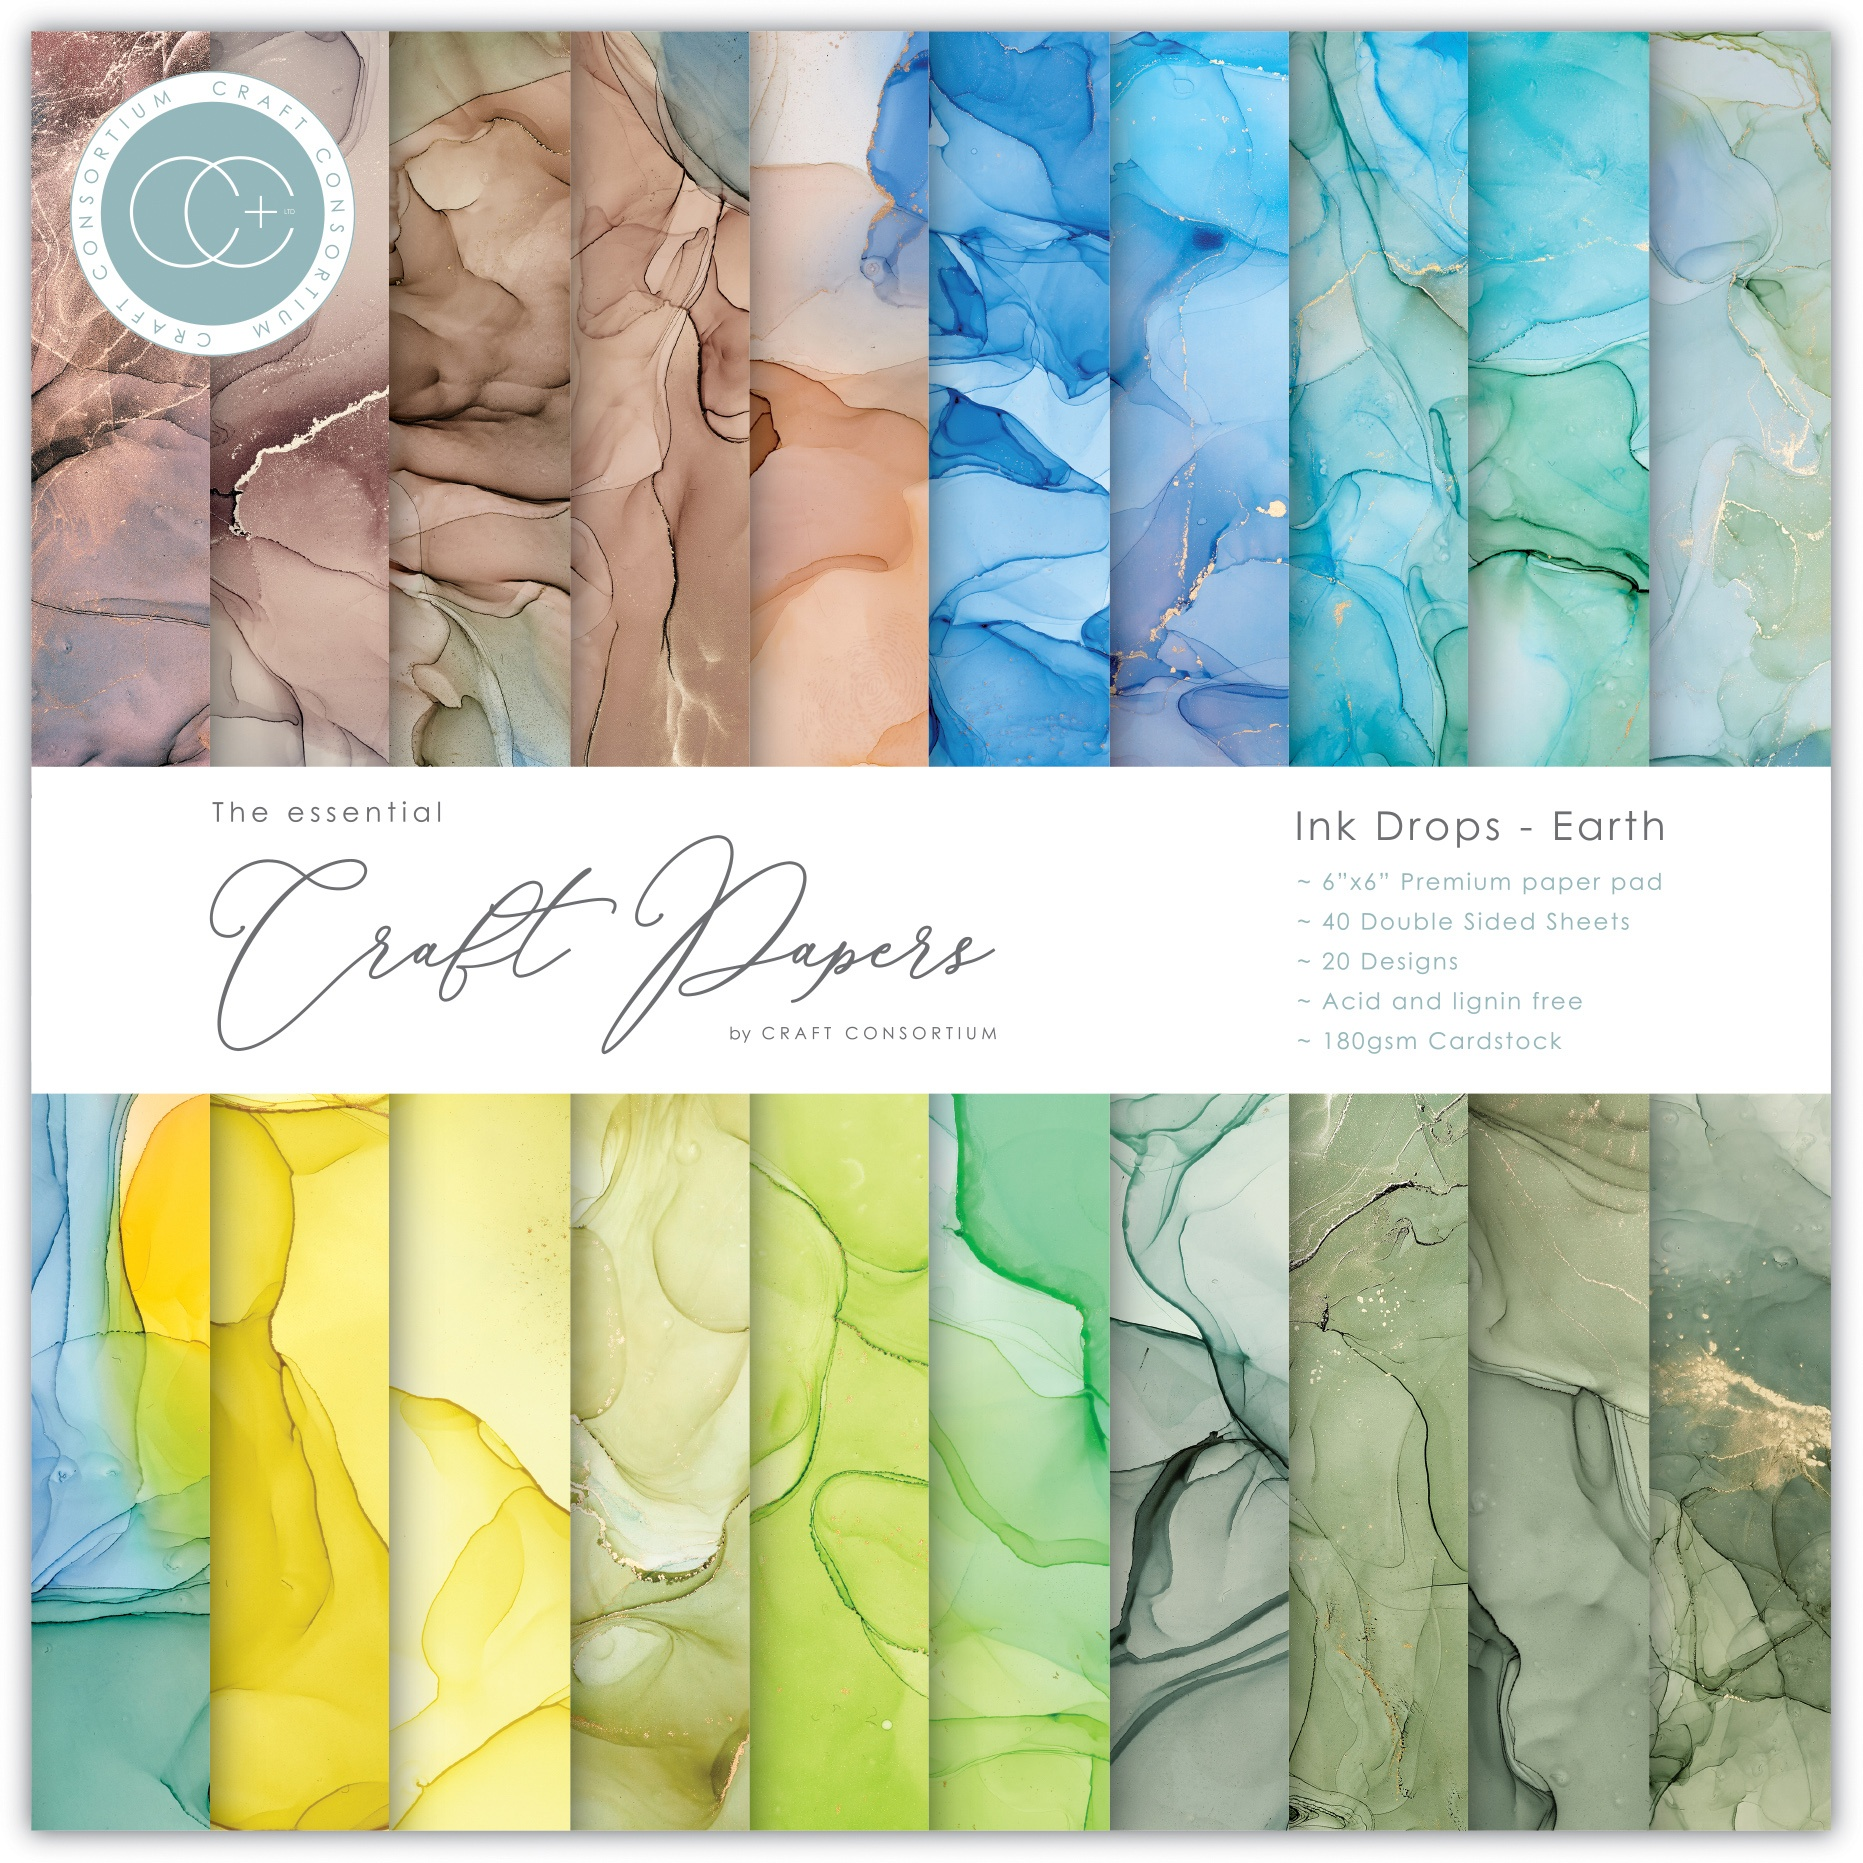 Craft Consortium Double-Sided Paper Pad 6X6 40/Pkg-Ink Drops - Earth, 20 Designs